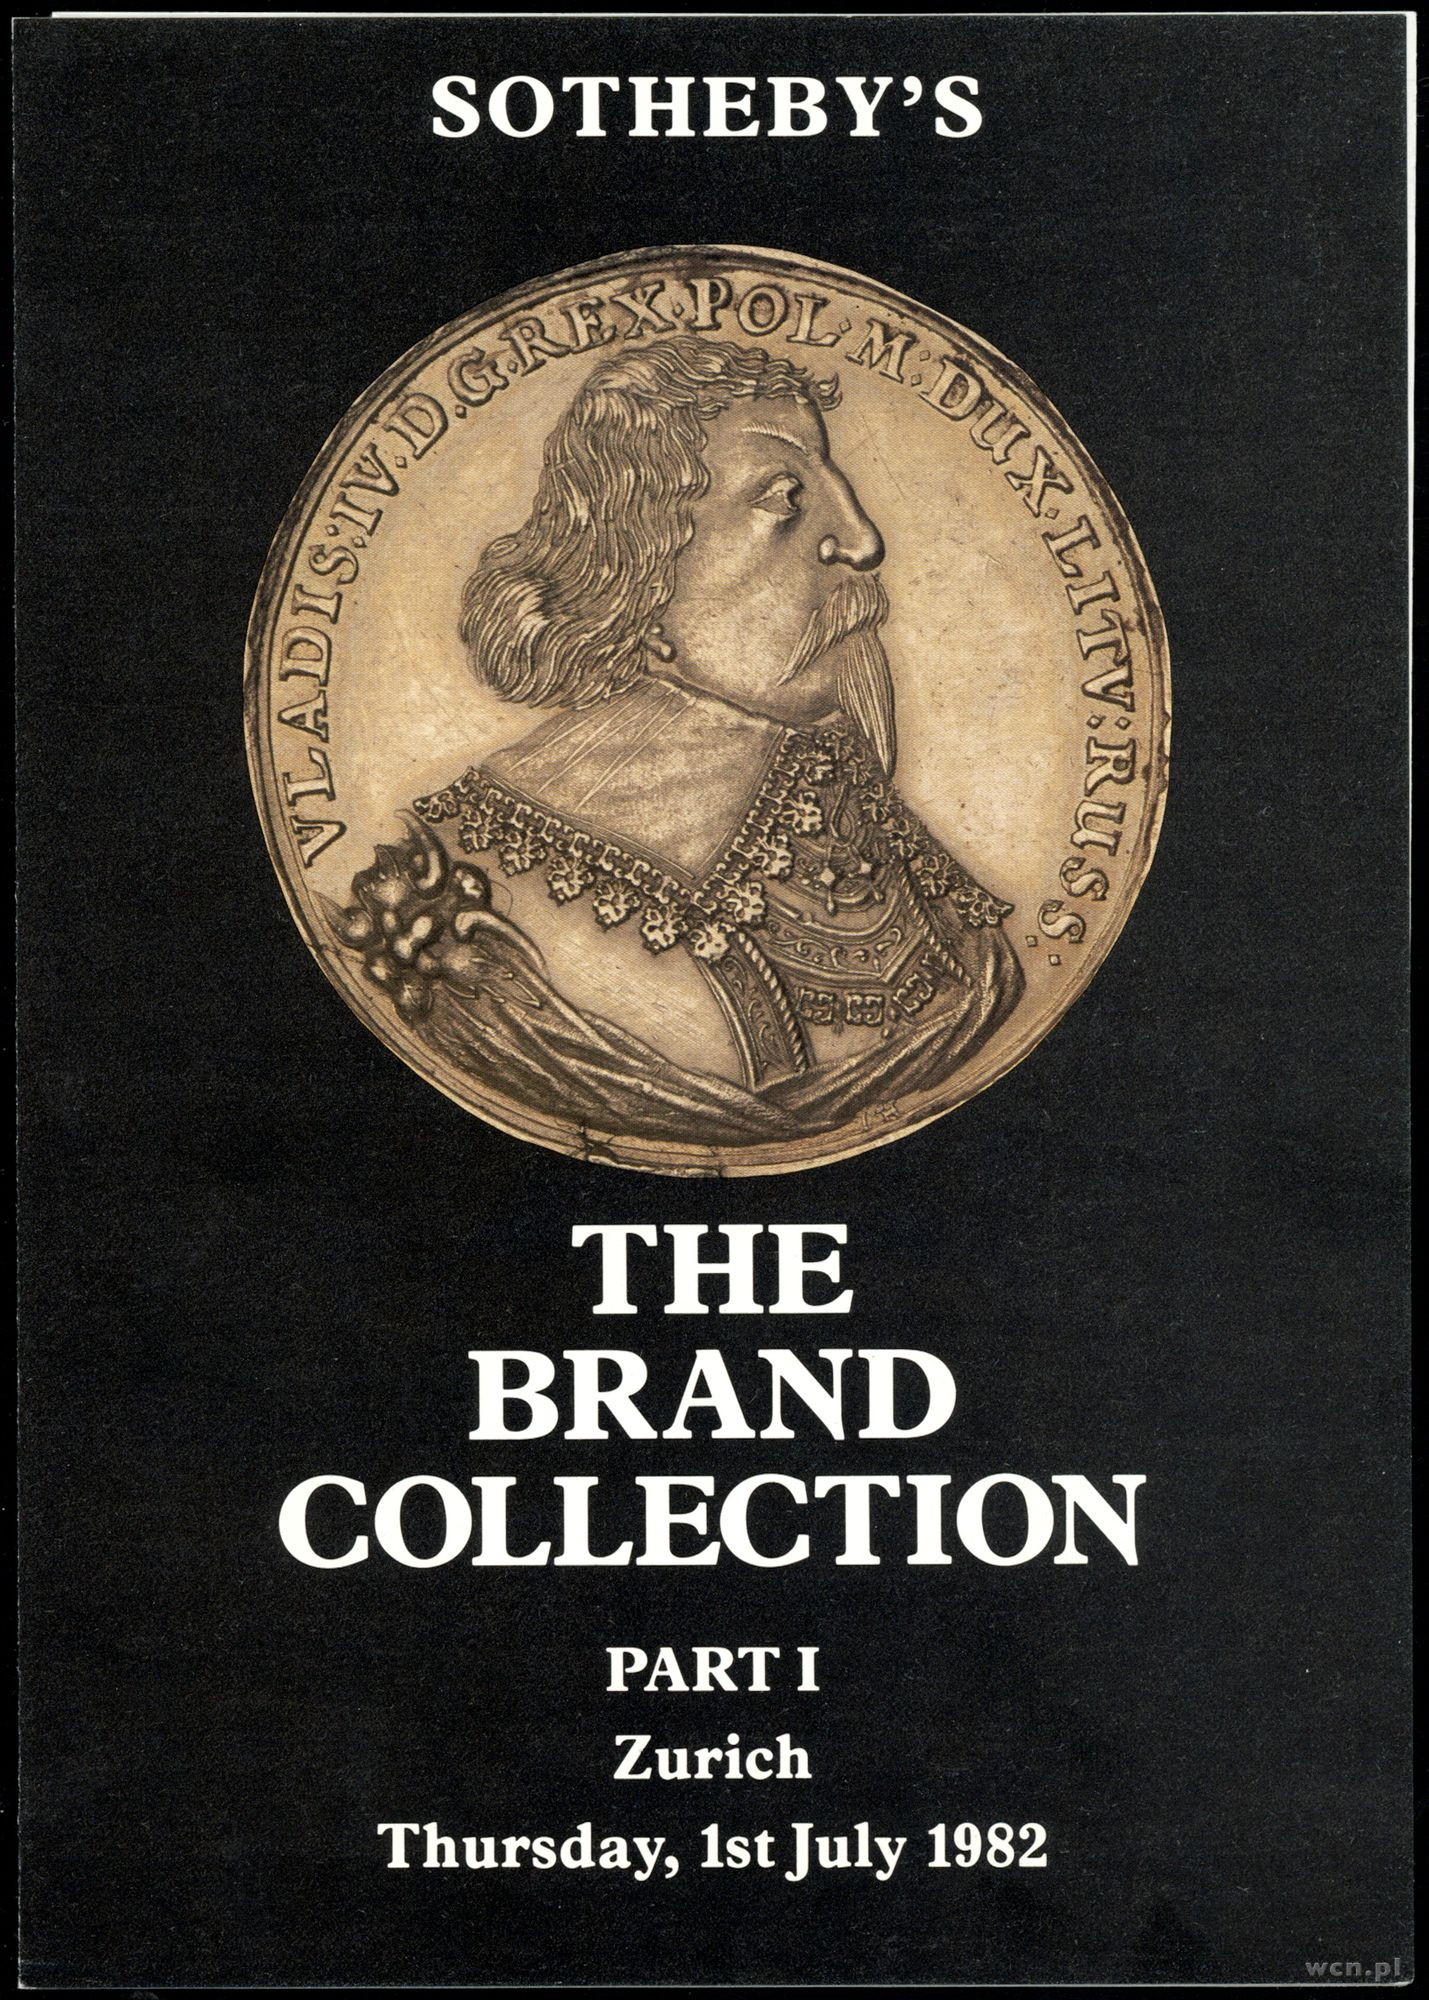 Sotheby's, The Brand Collection, Part 1, Roman a